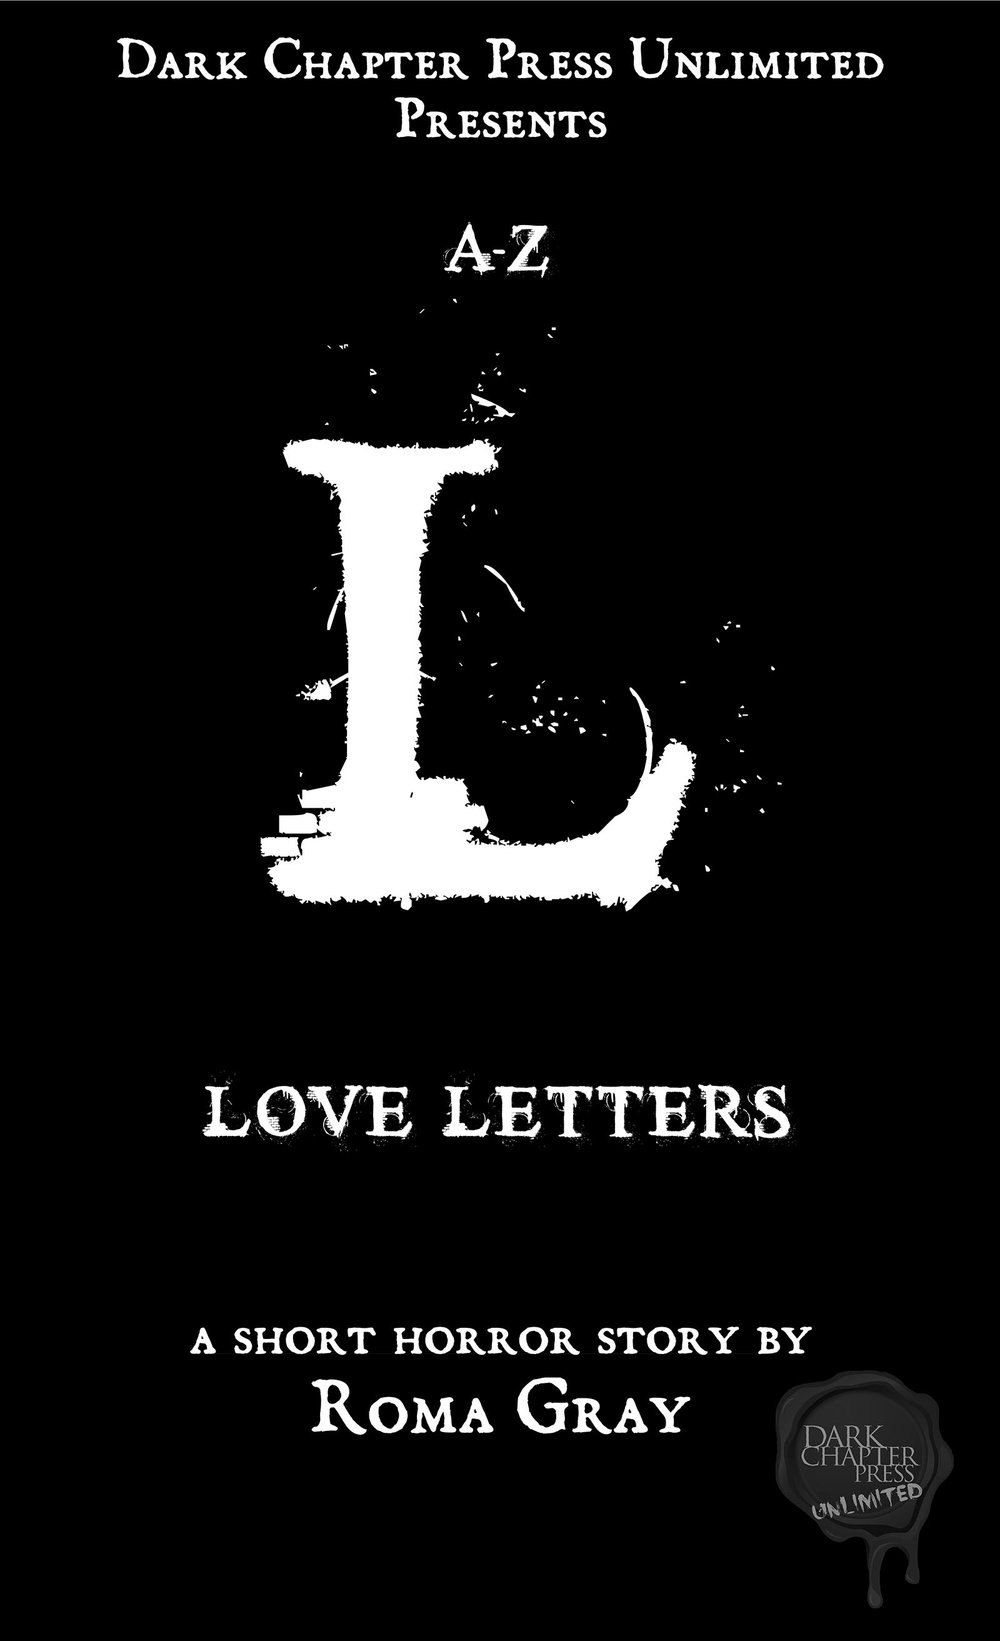 Love letters. A fond token of remembrance, a treasured means of communication between loved ones, a primitive form of sentiment that has outlived the intrusion of modern technology. Love letters are cherished; they contain intimate secrets and private thoughts, but they can also reveal a darker side to the human emotion, a very real evil that is more than just words on a page…